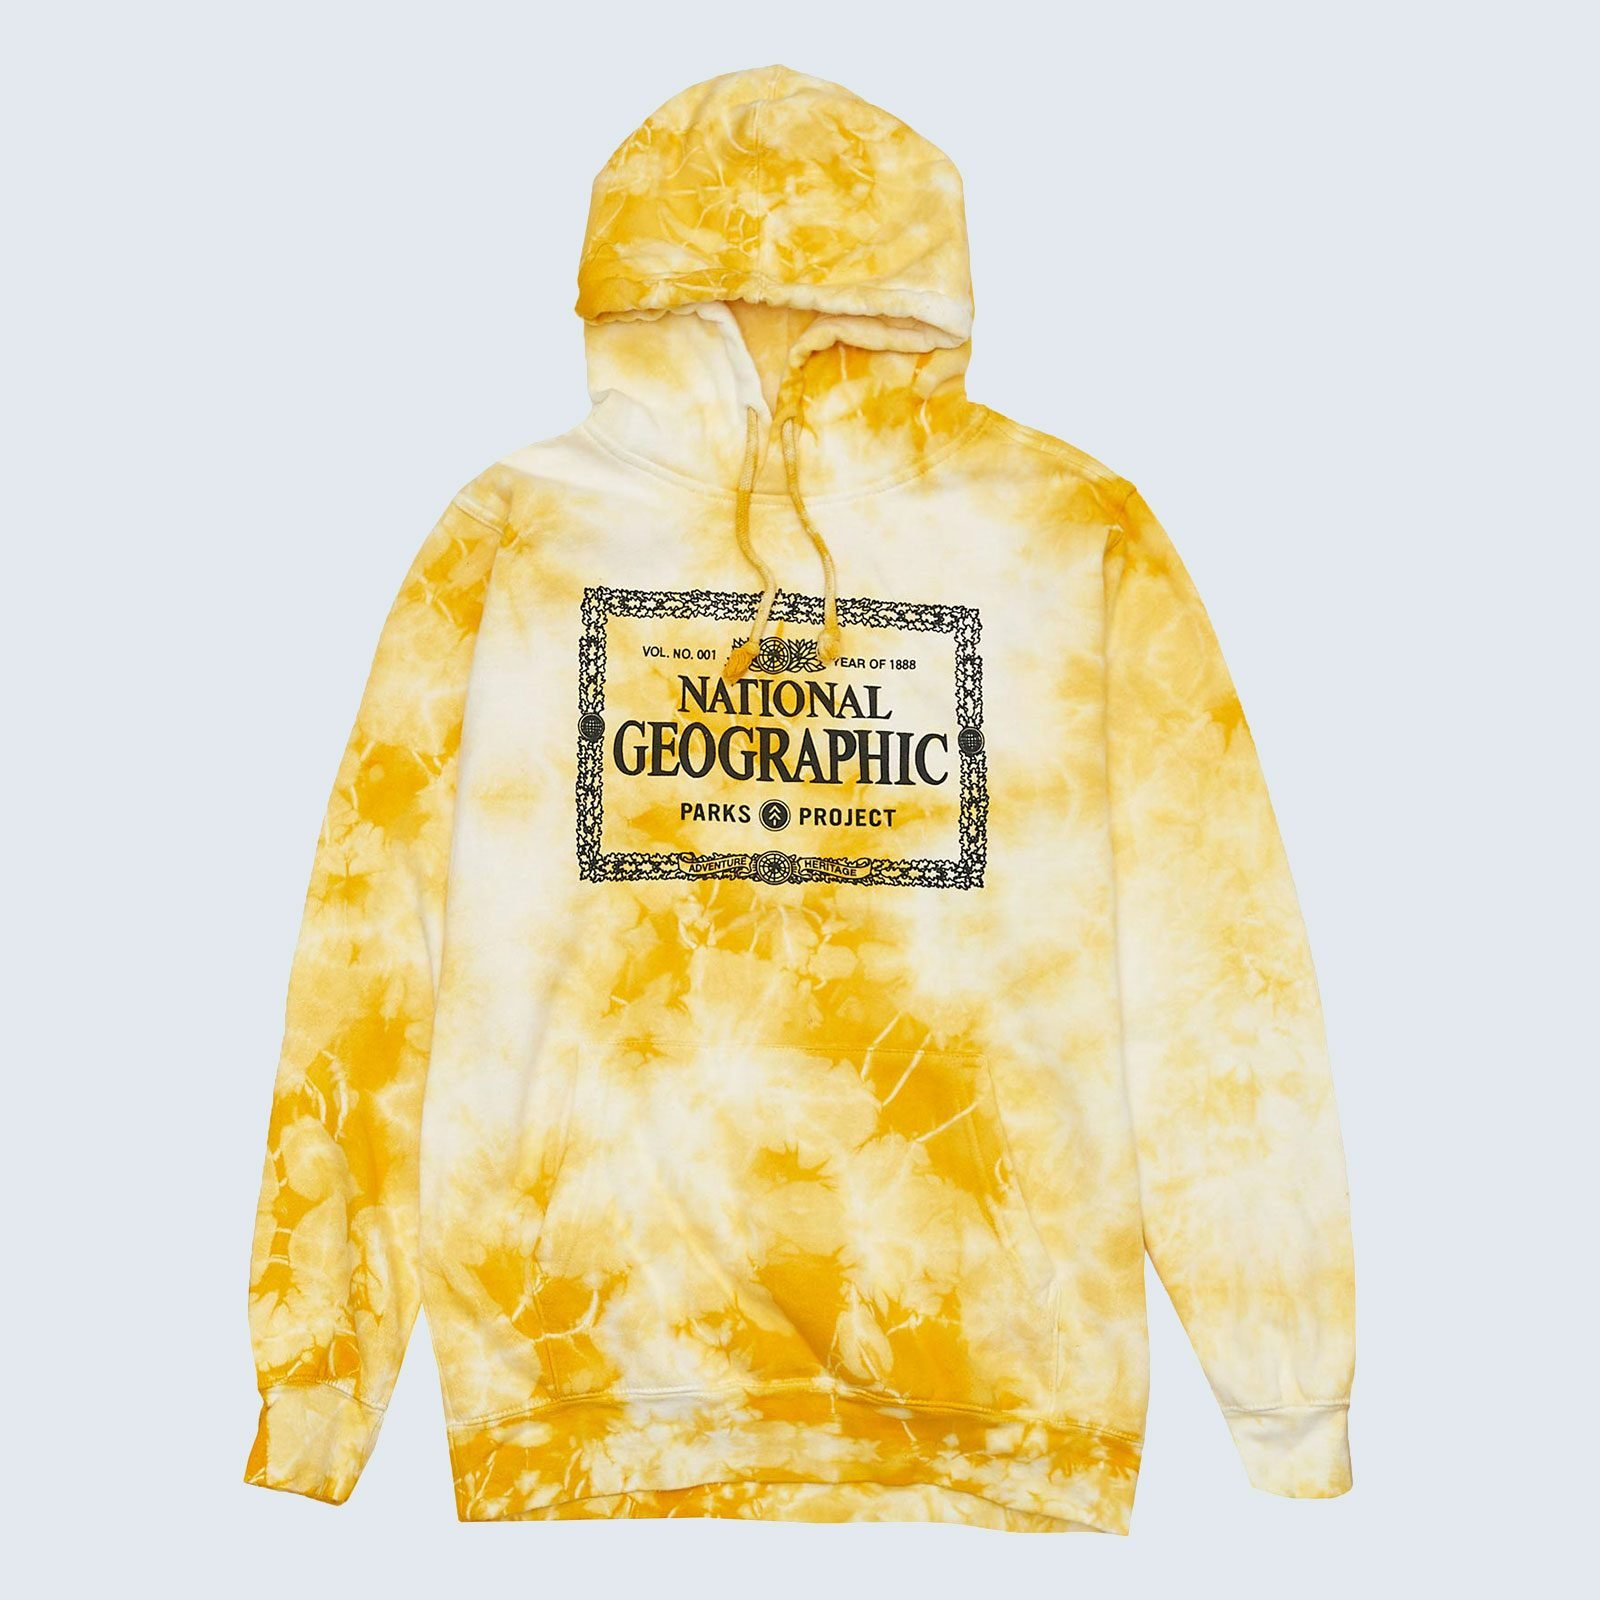 National Geographic x Parks Project Legacy Tie Dye Hoodie